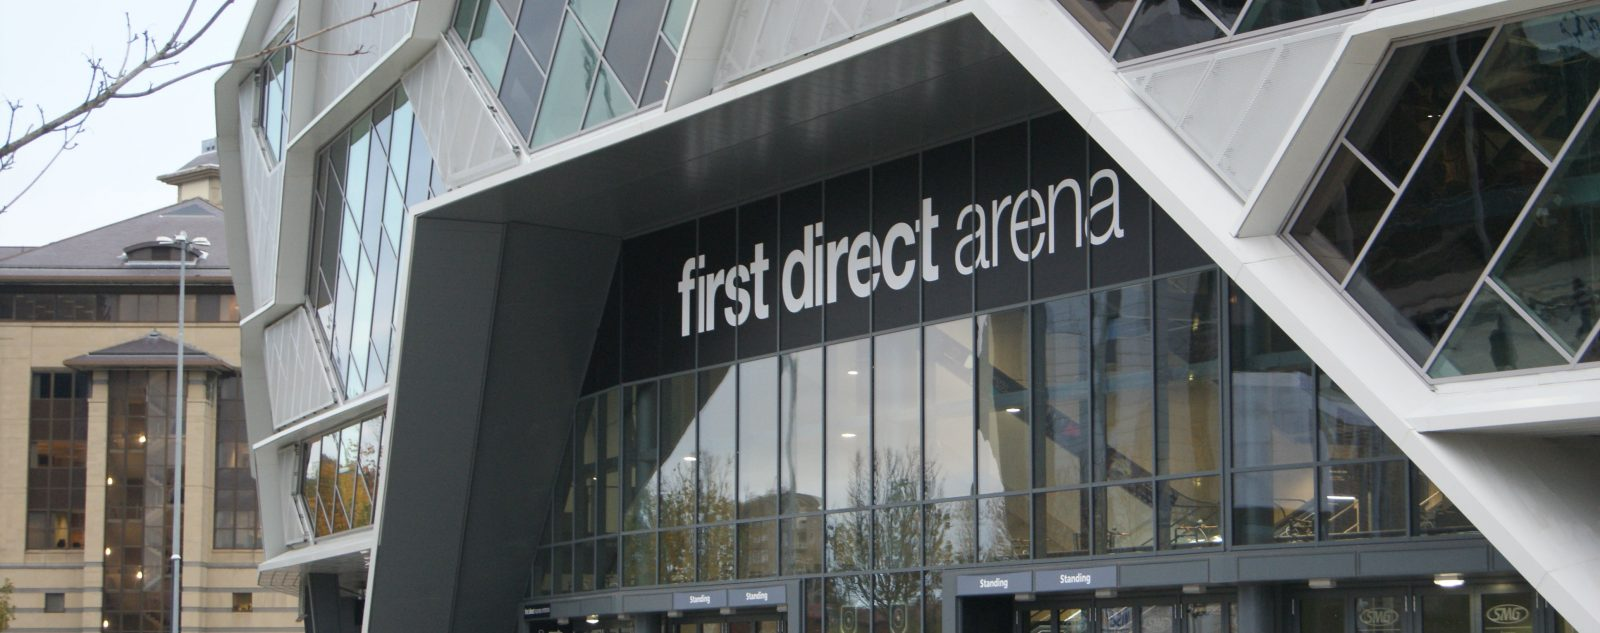 First Direct Arena Customer Services